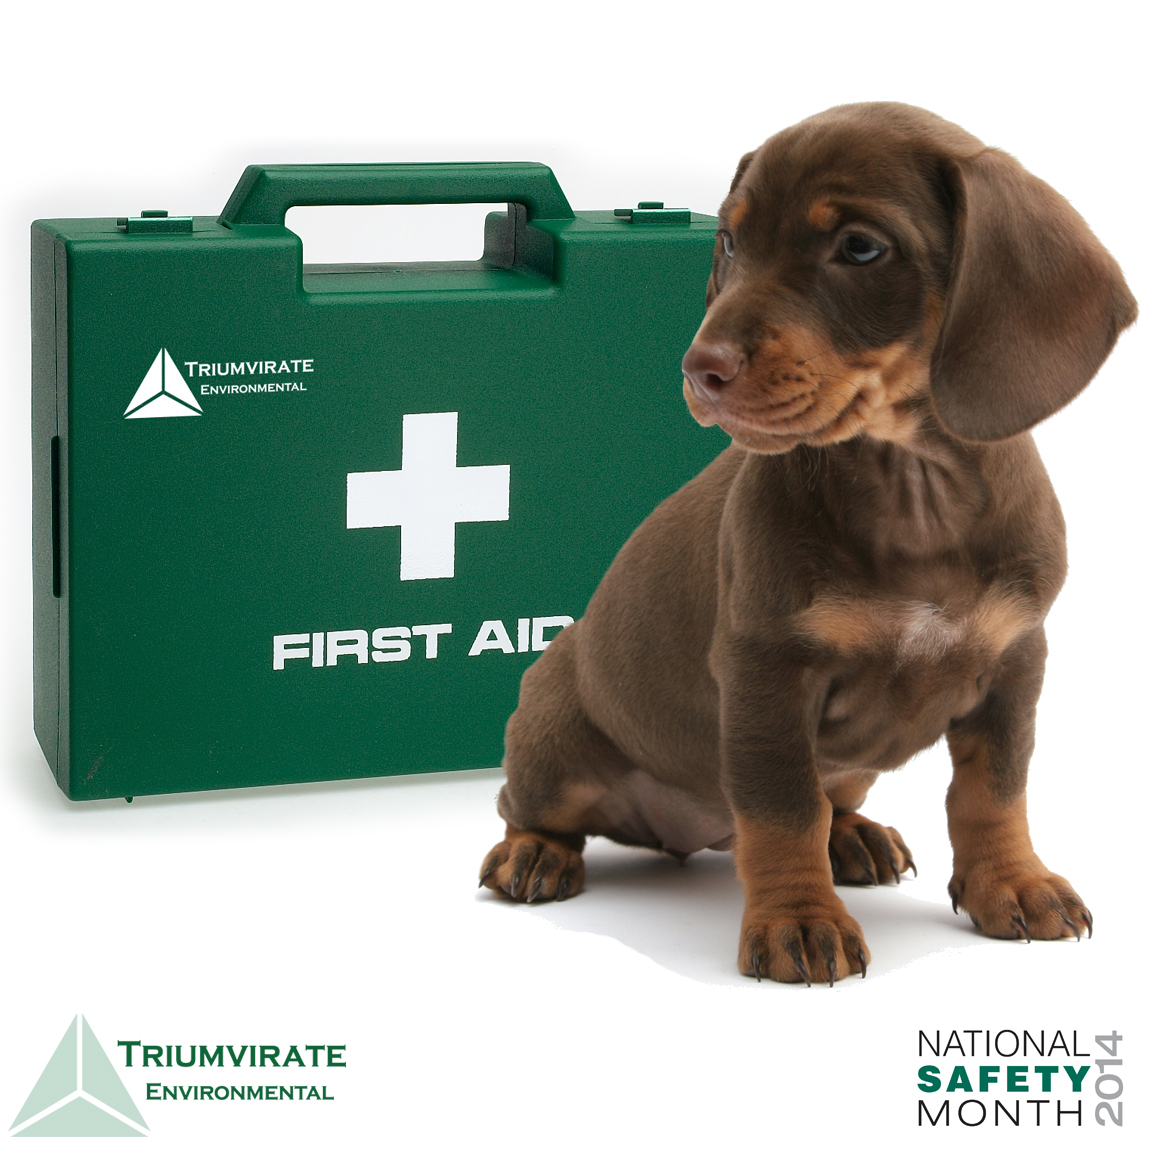 First Aid Puppy Picture